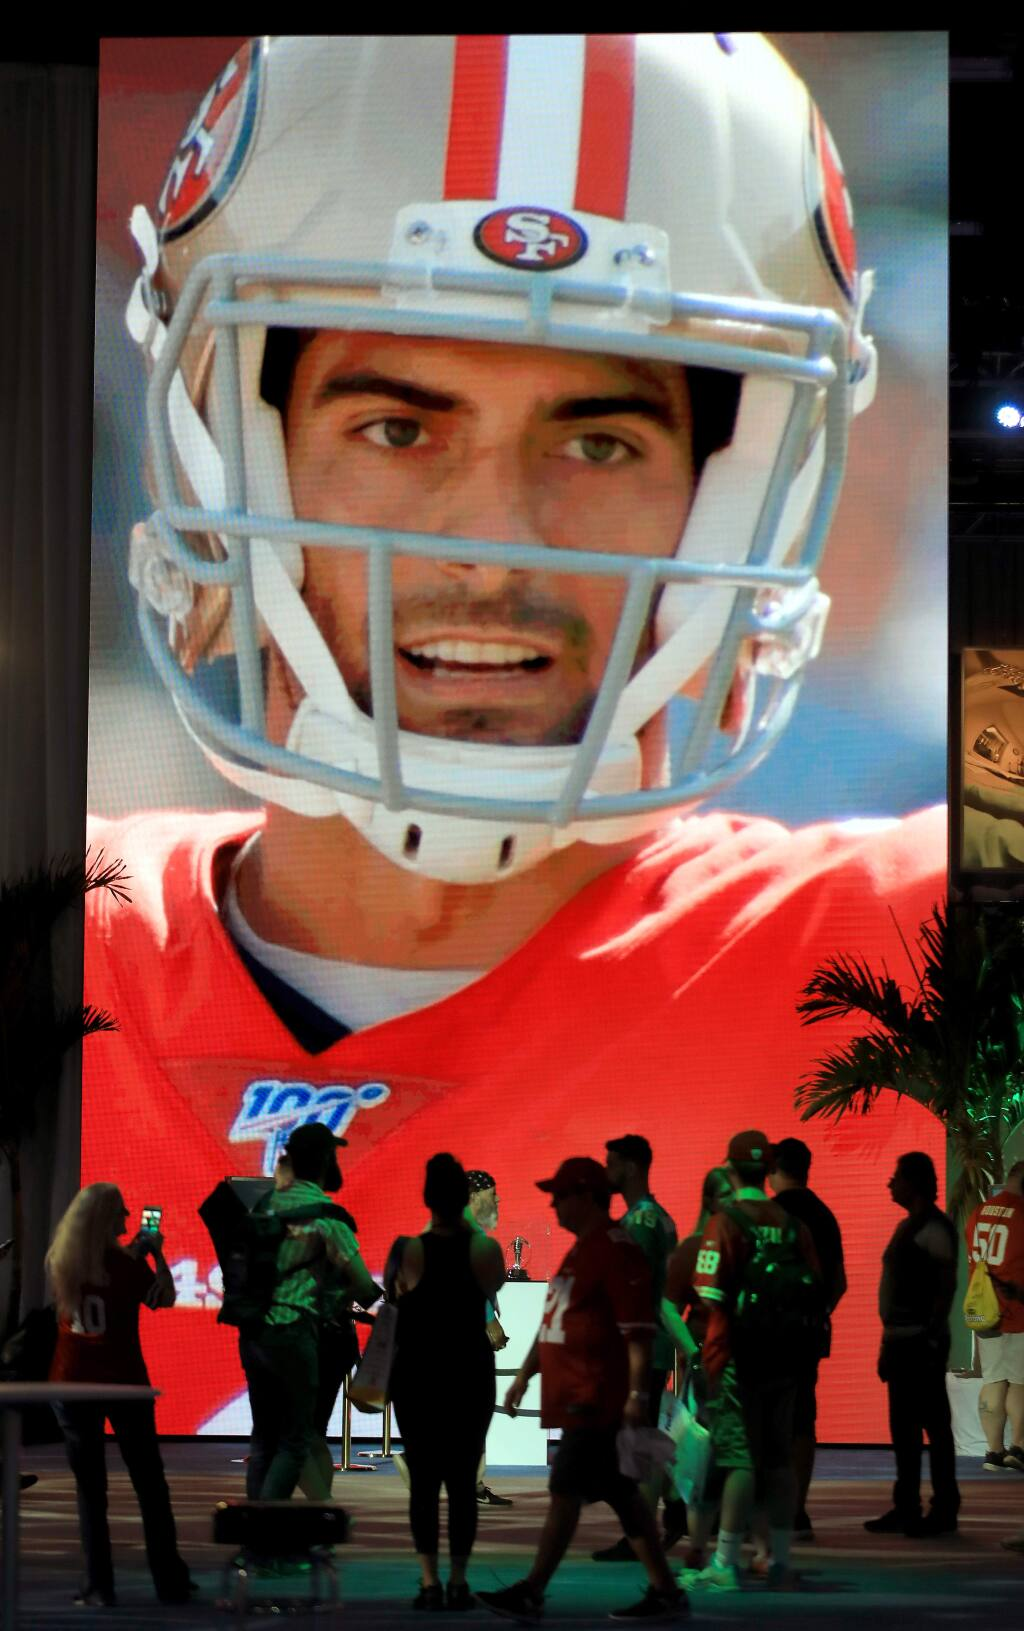 A larger than life video screen projects San Francisco quarterback Jimmy Garoppolo, Friday Jan. 31, 2020 in Miami Beach at the Super Bowl Experience. (Kent Porter / The Press Democrat) 2020